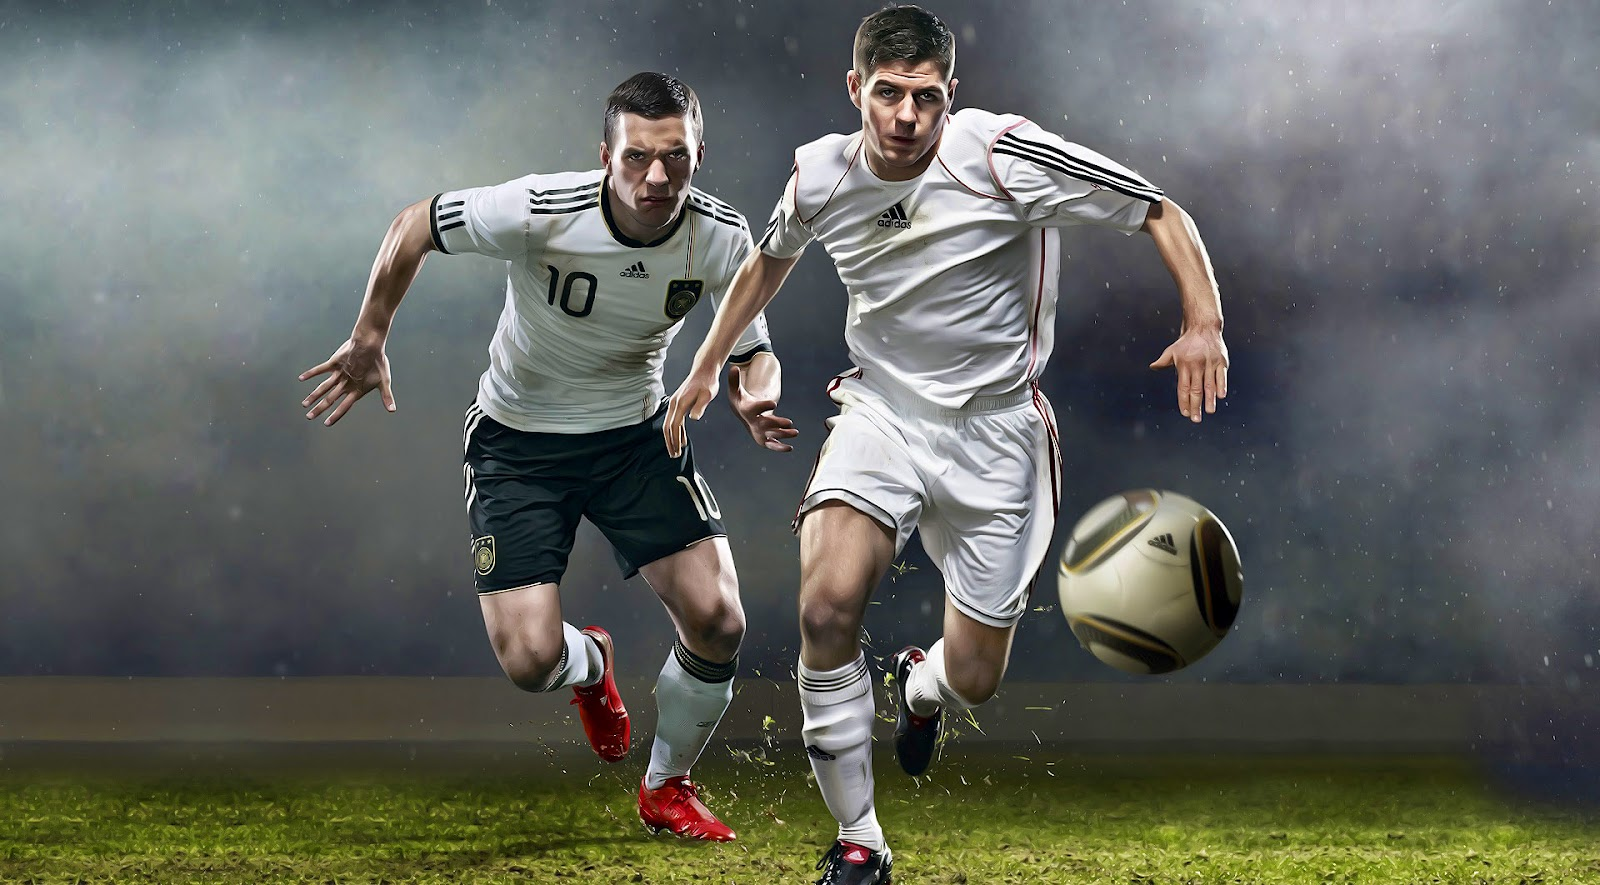 Soccer Players Wallpapers Wallpapers of Soccer Players 1600x885